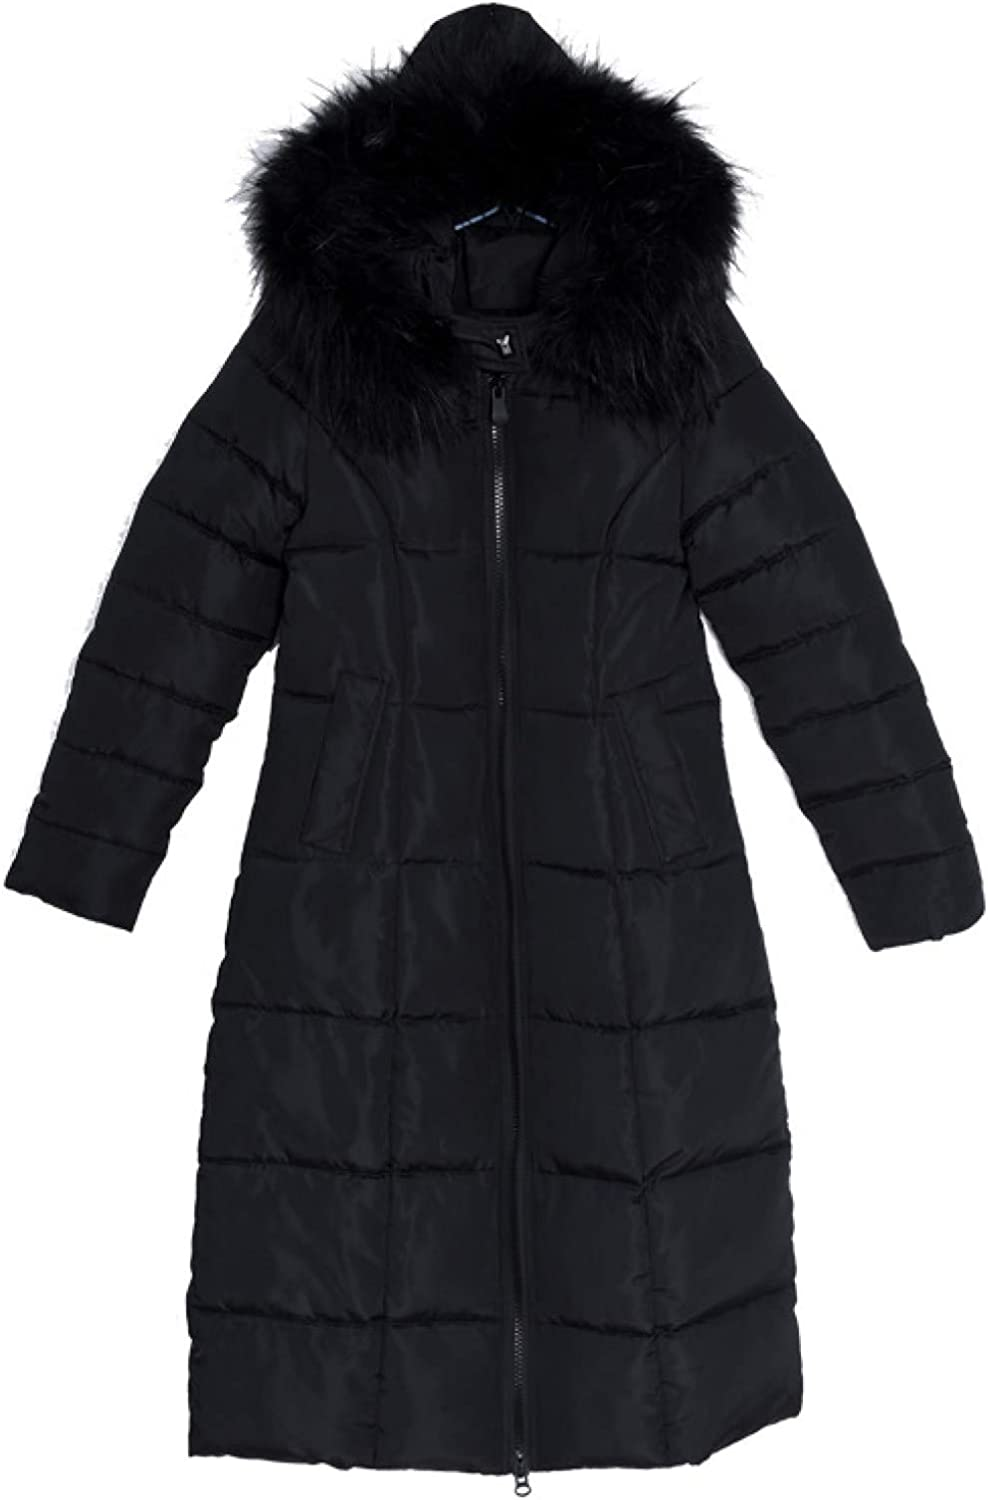 Female Ultra-Light Windproof Outerwear Long Padding Winter Coat with Faux Fur Trim Hood